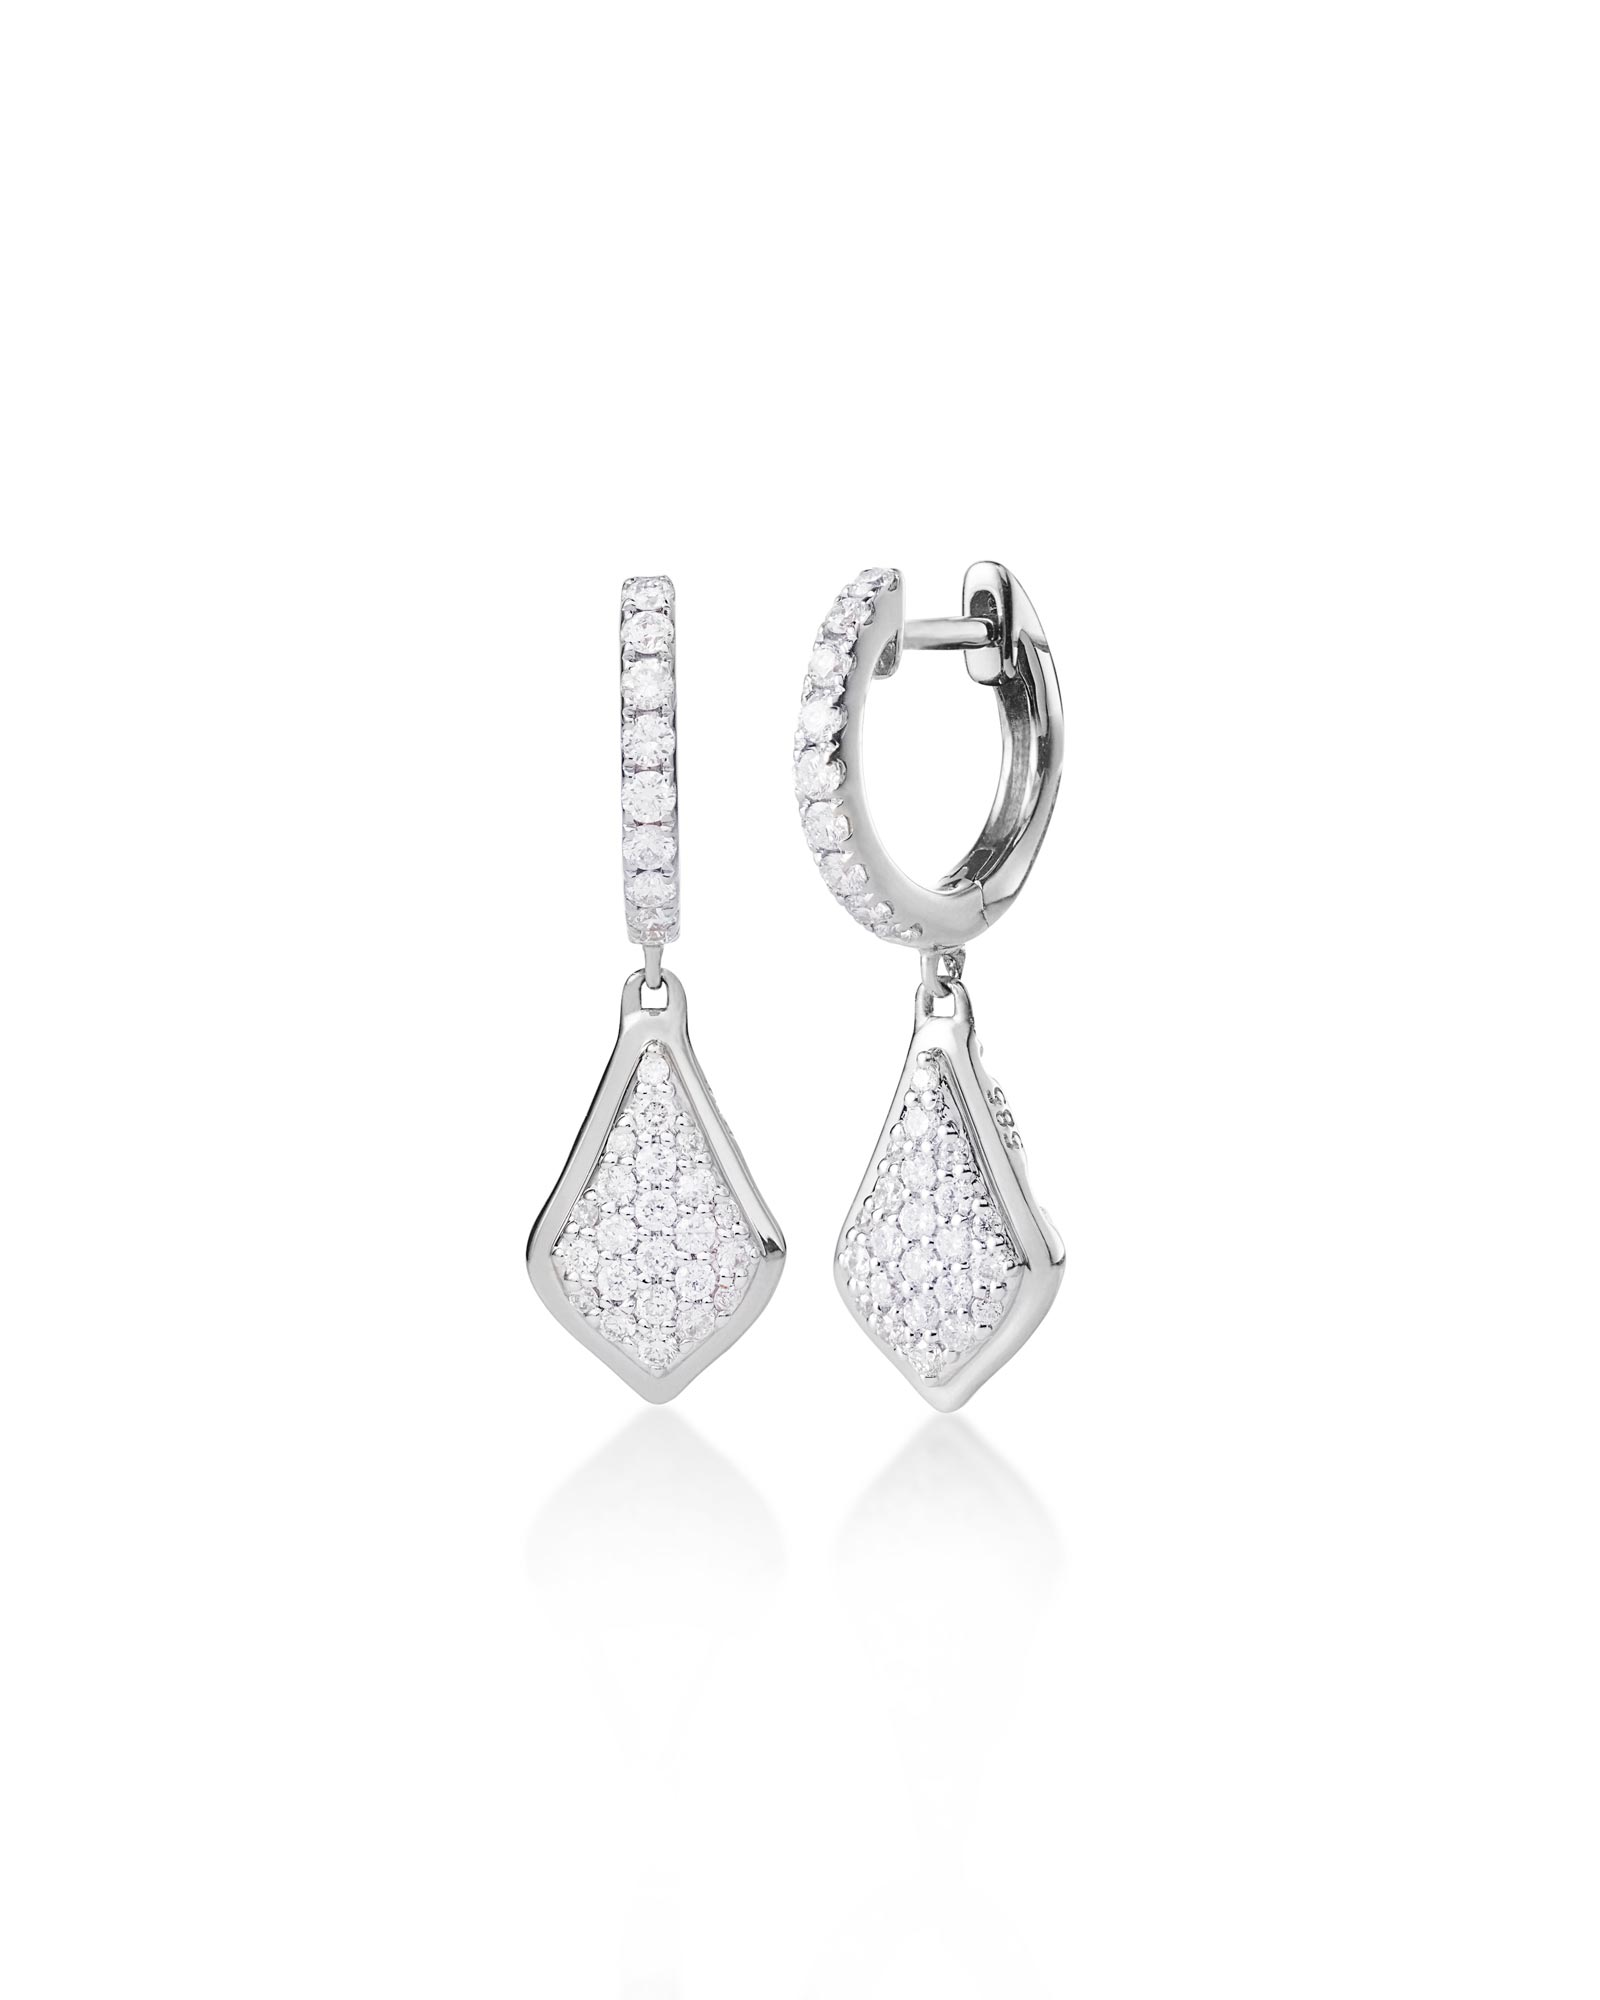 Luella Drop Earrings in Pave Diamond and 14k White Gold